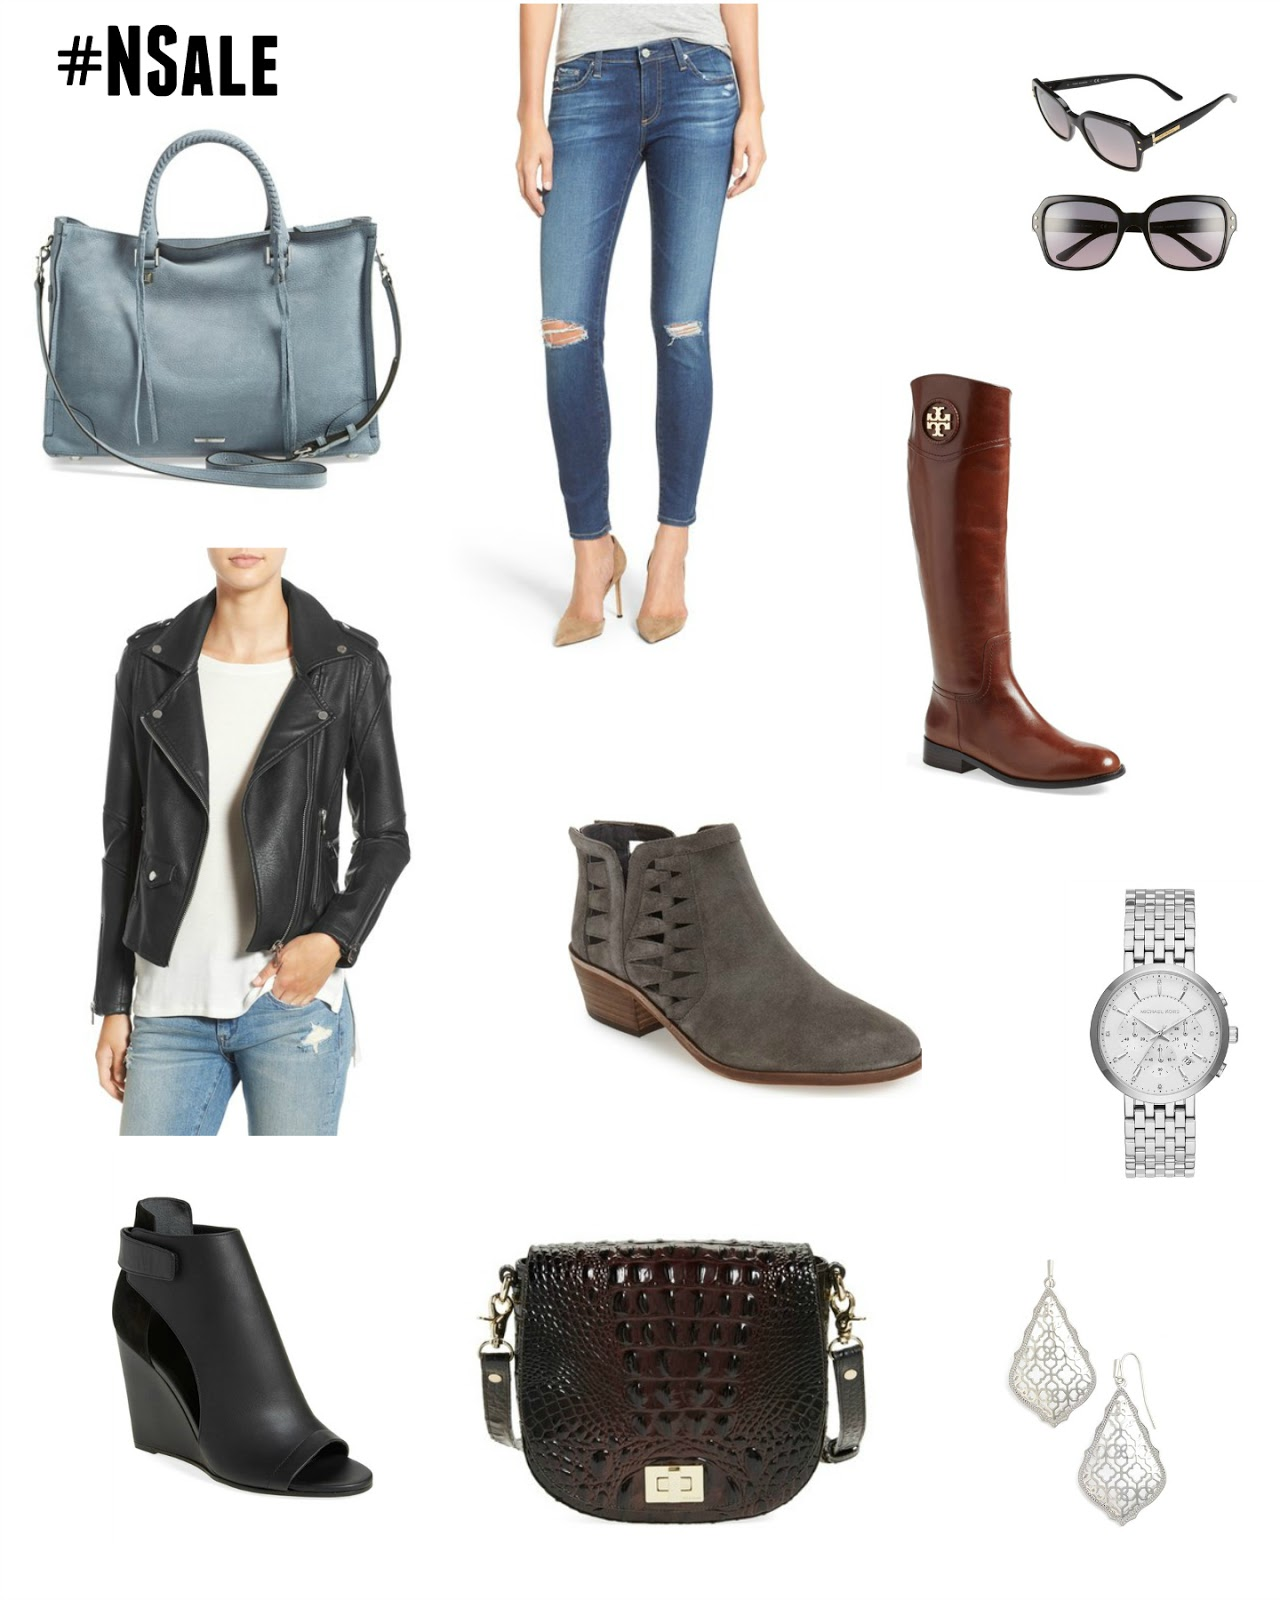 Nordstrom Anniversary Sale, Fall Style Must-Haves